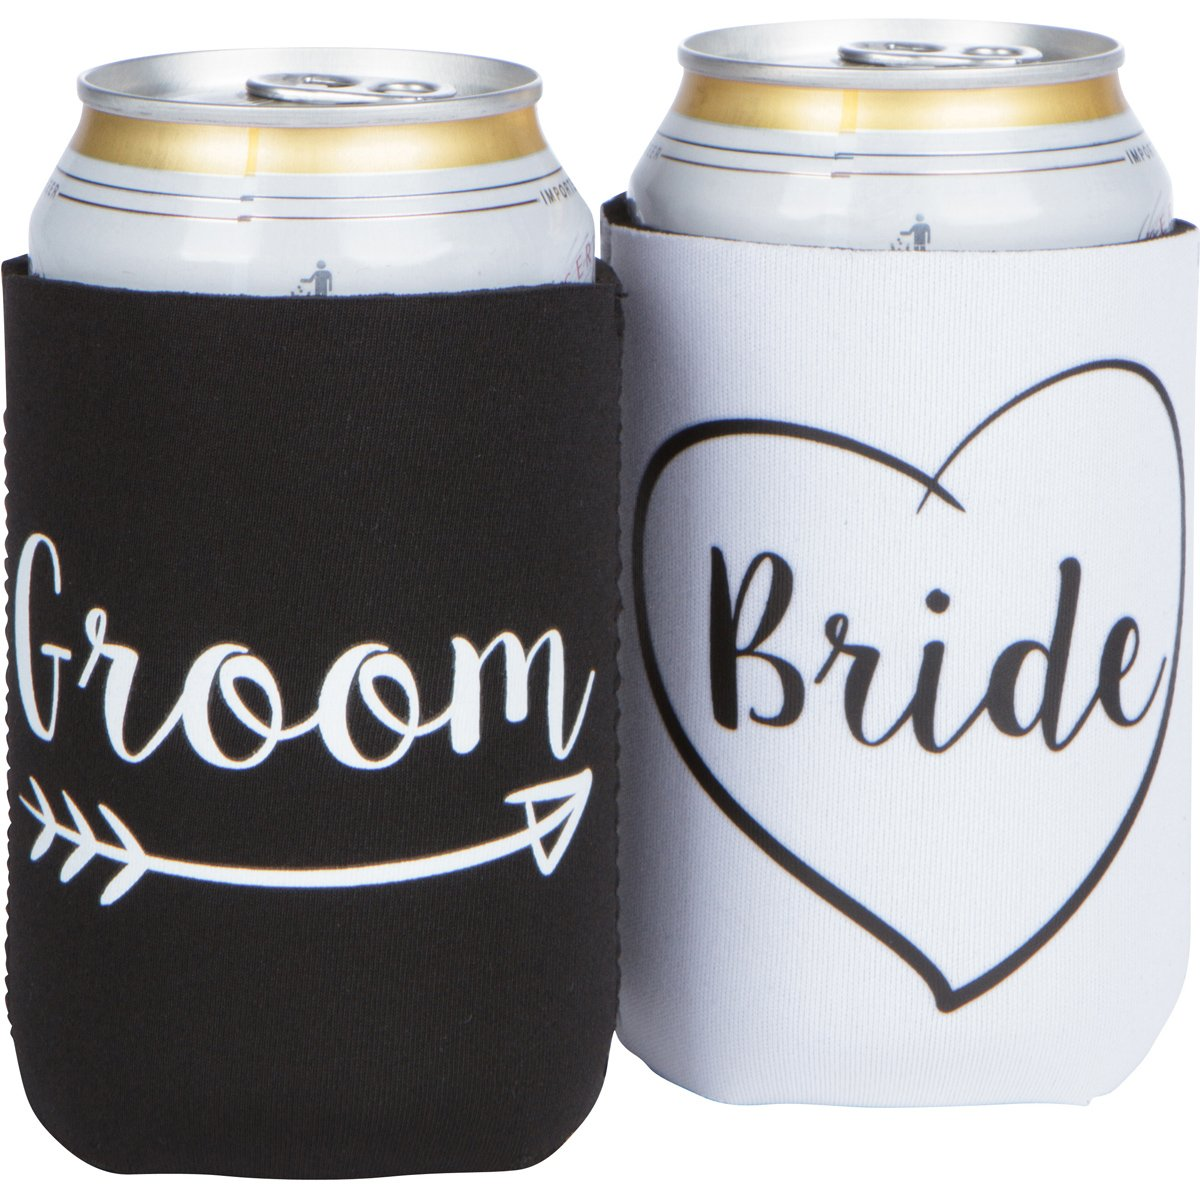 Cute Wedding Gifts - Bride and Groom Novelty Can Cooler Combo - Engagement Gift for Couples by The Plympton Company (Image #6)